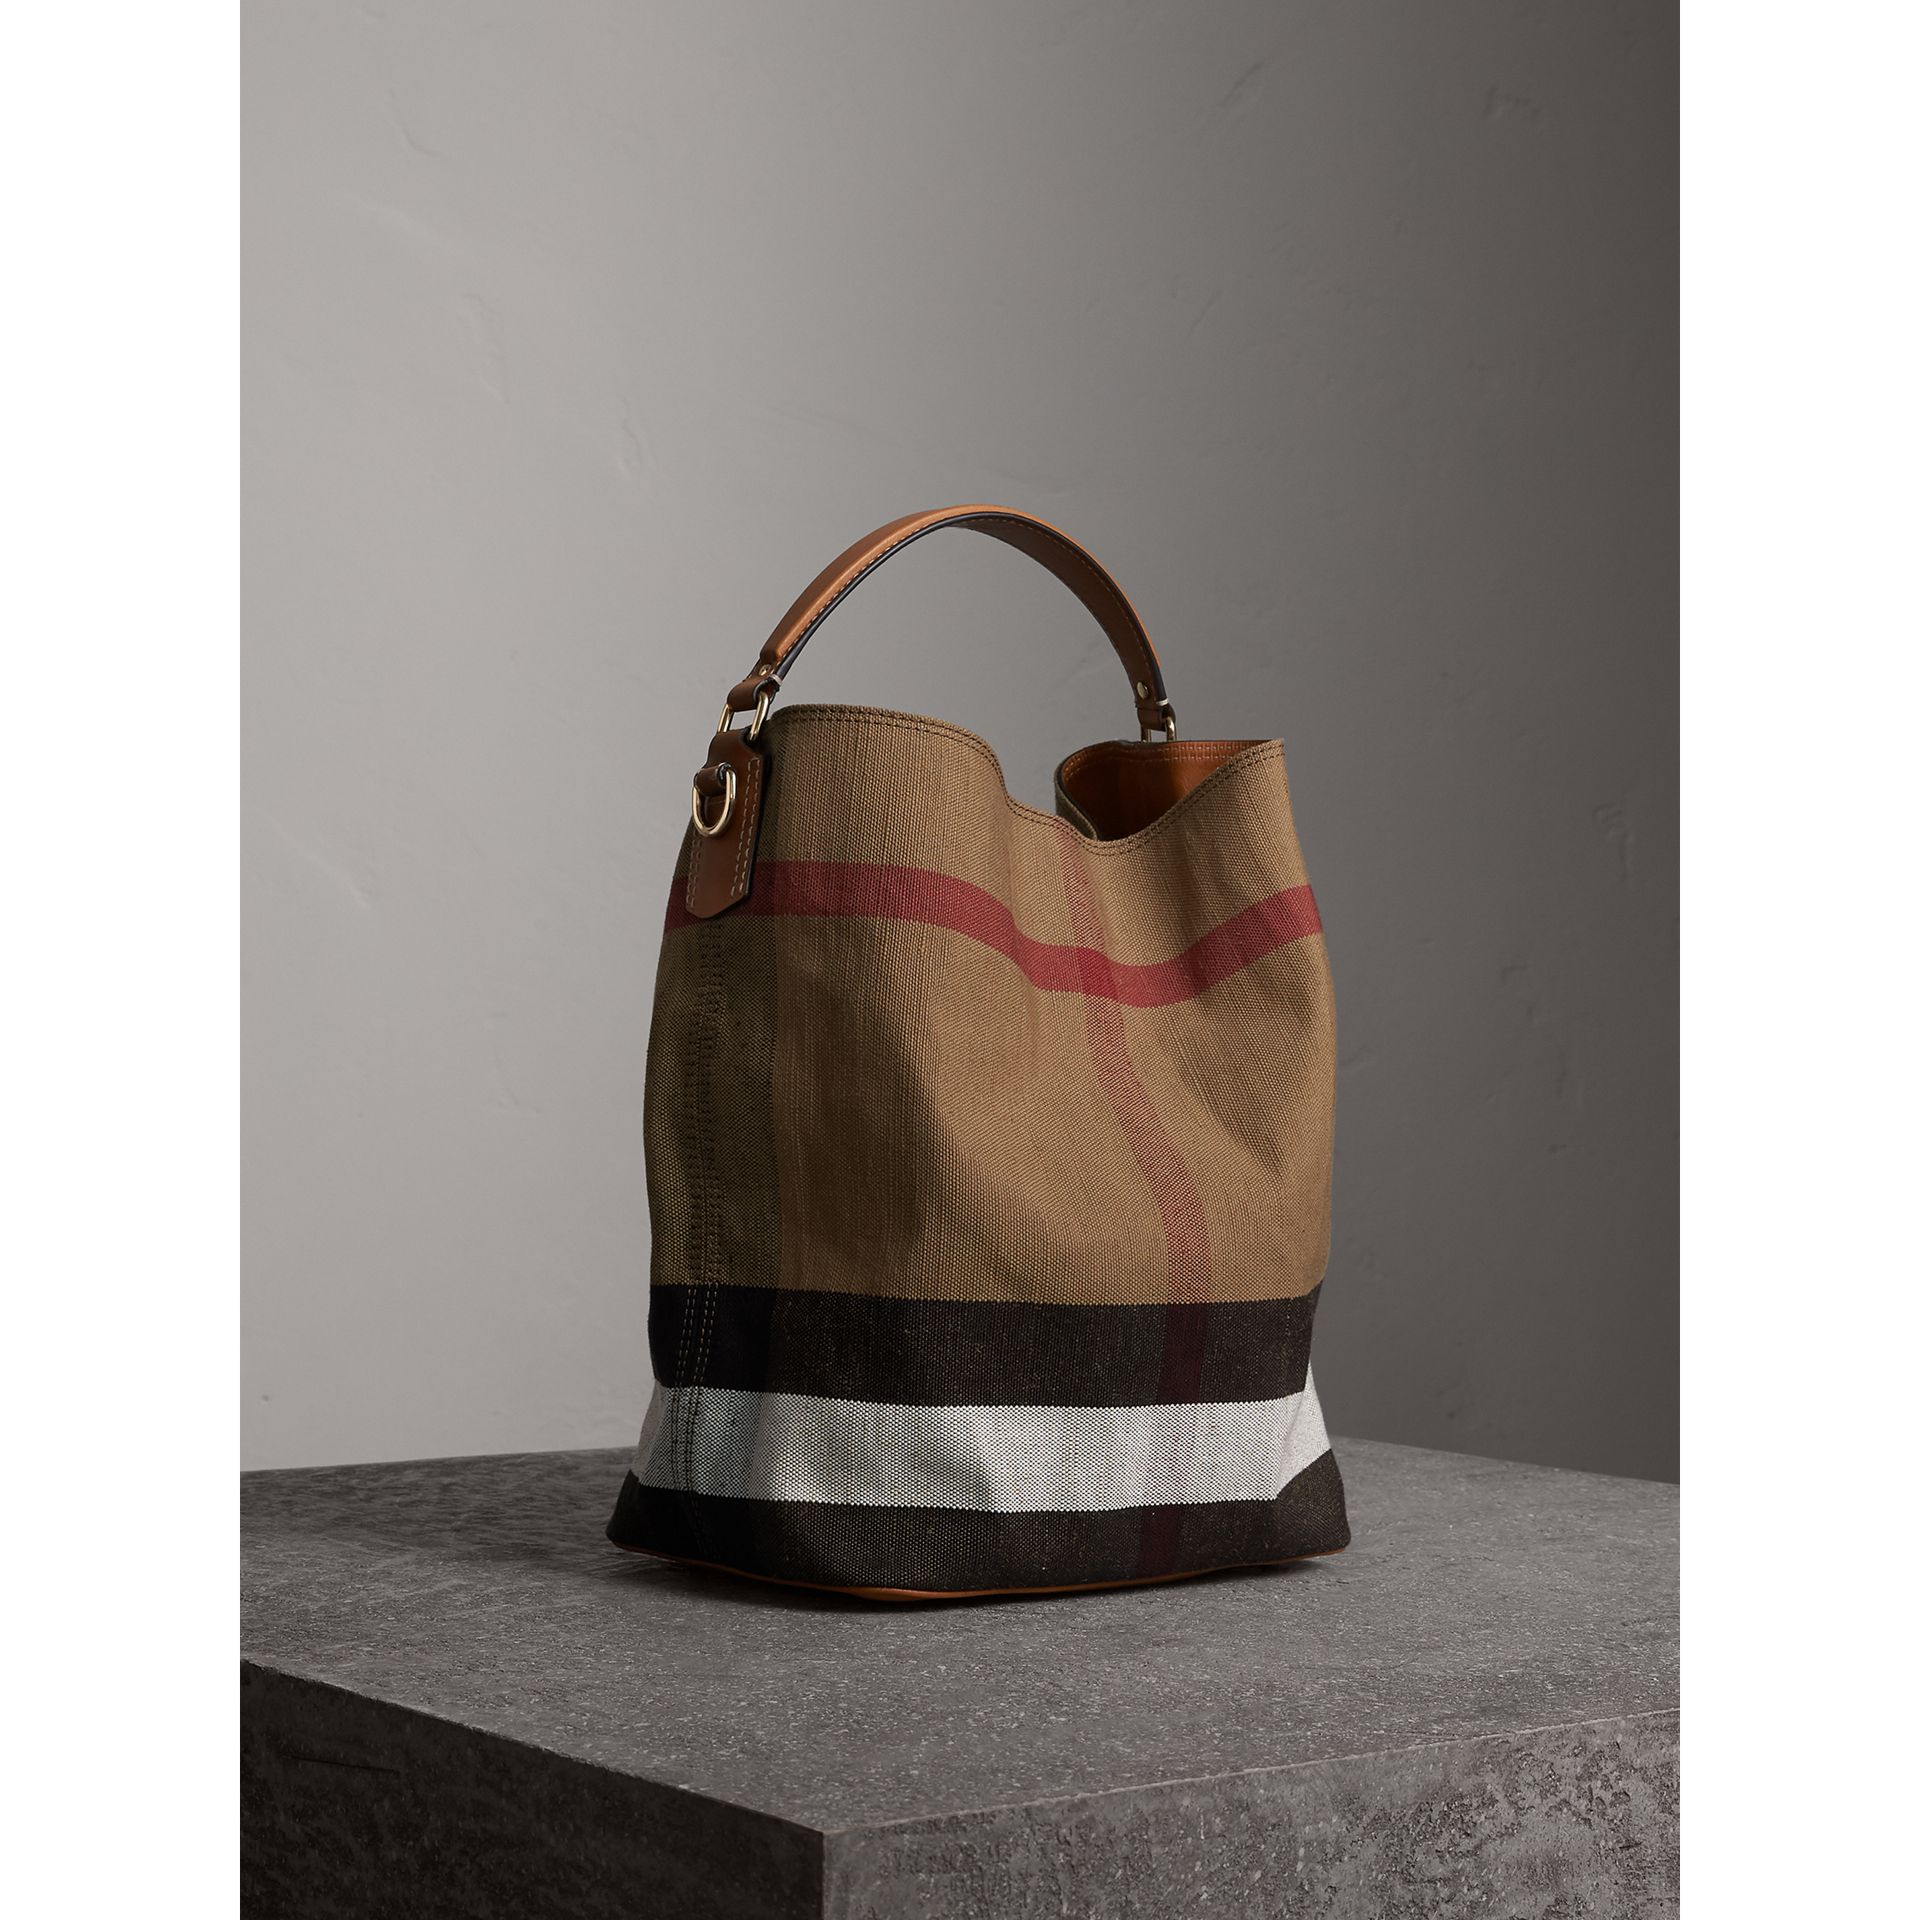 Medium Canvas Check Hobo Bag in Saddle Brown - Women | Burberry - gallery image 8